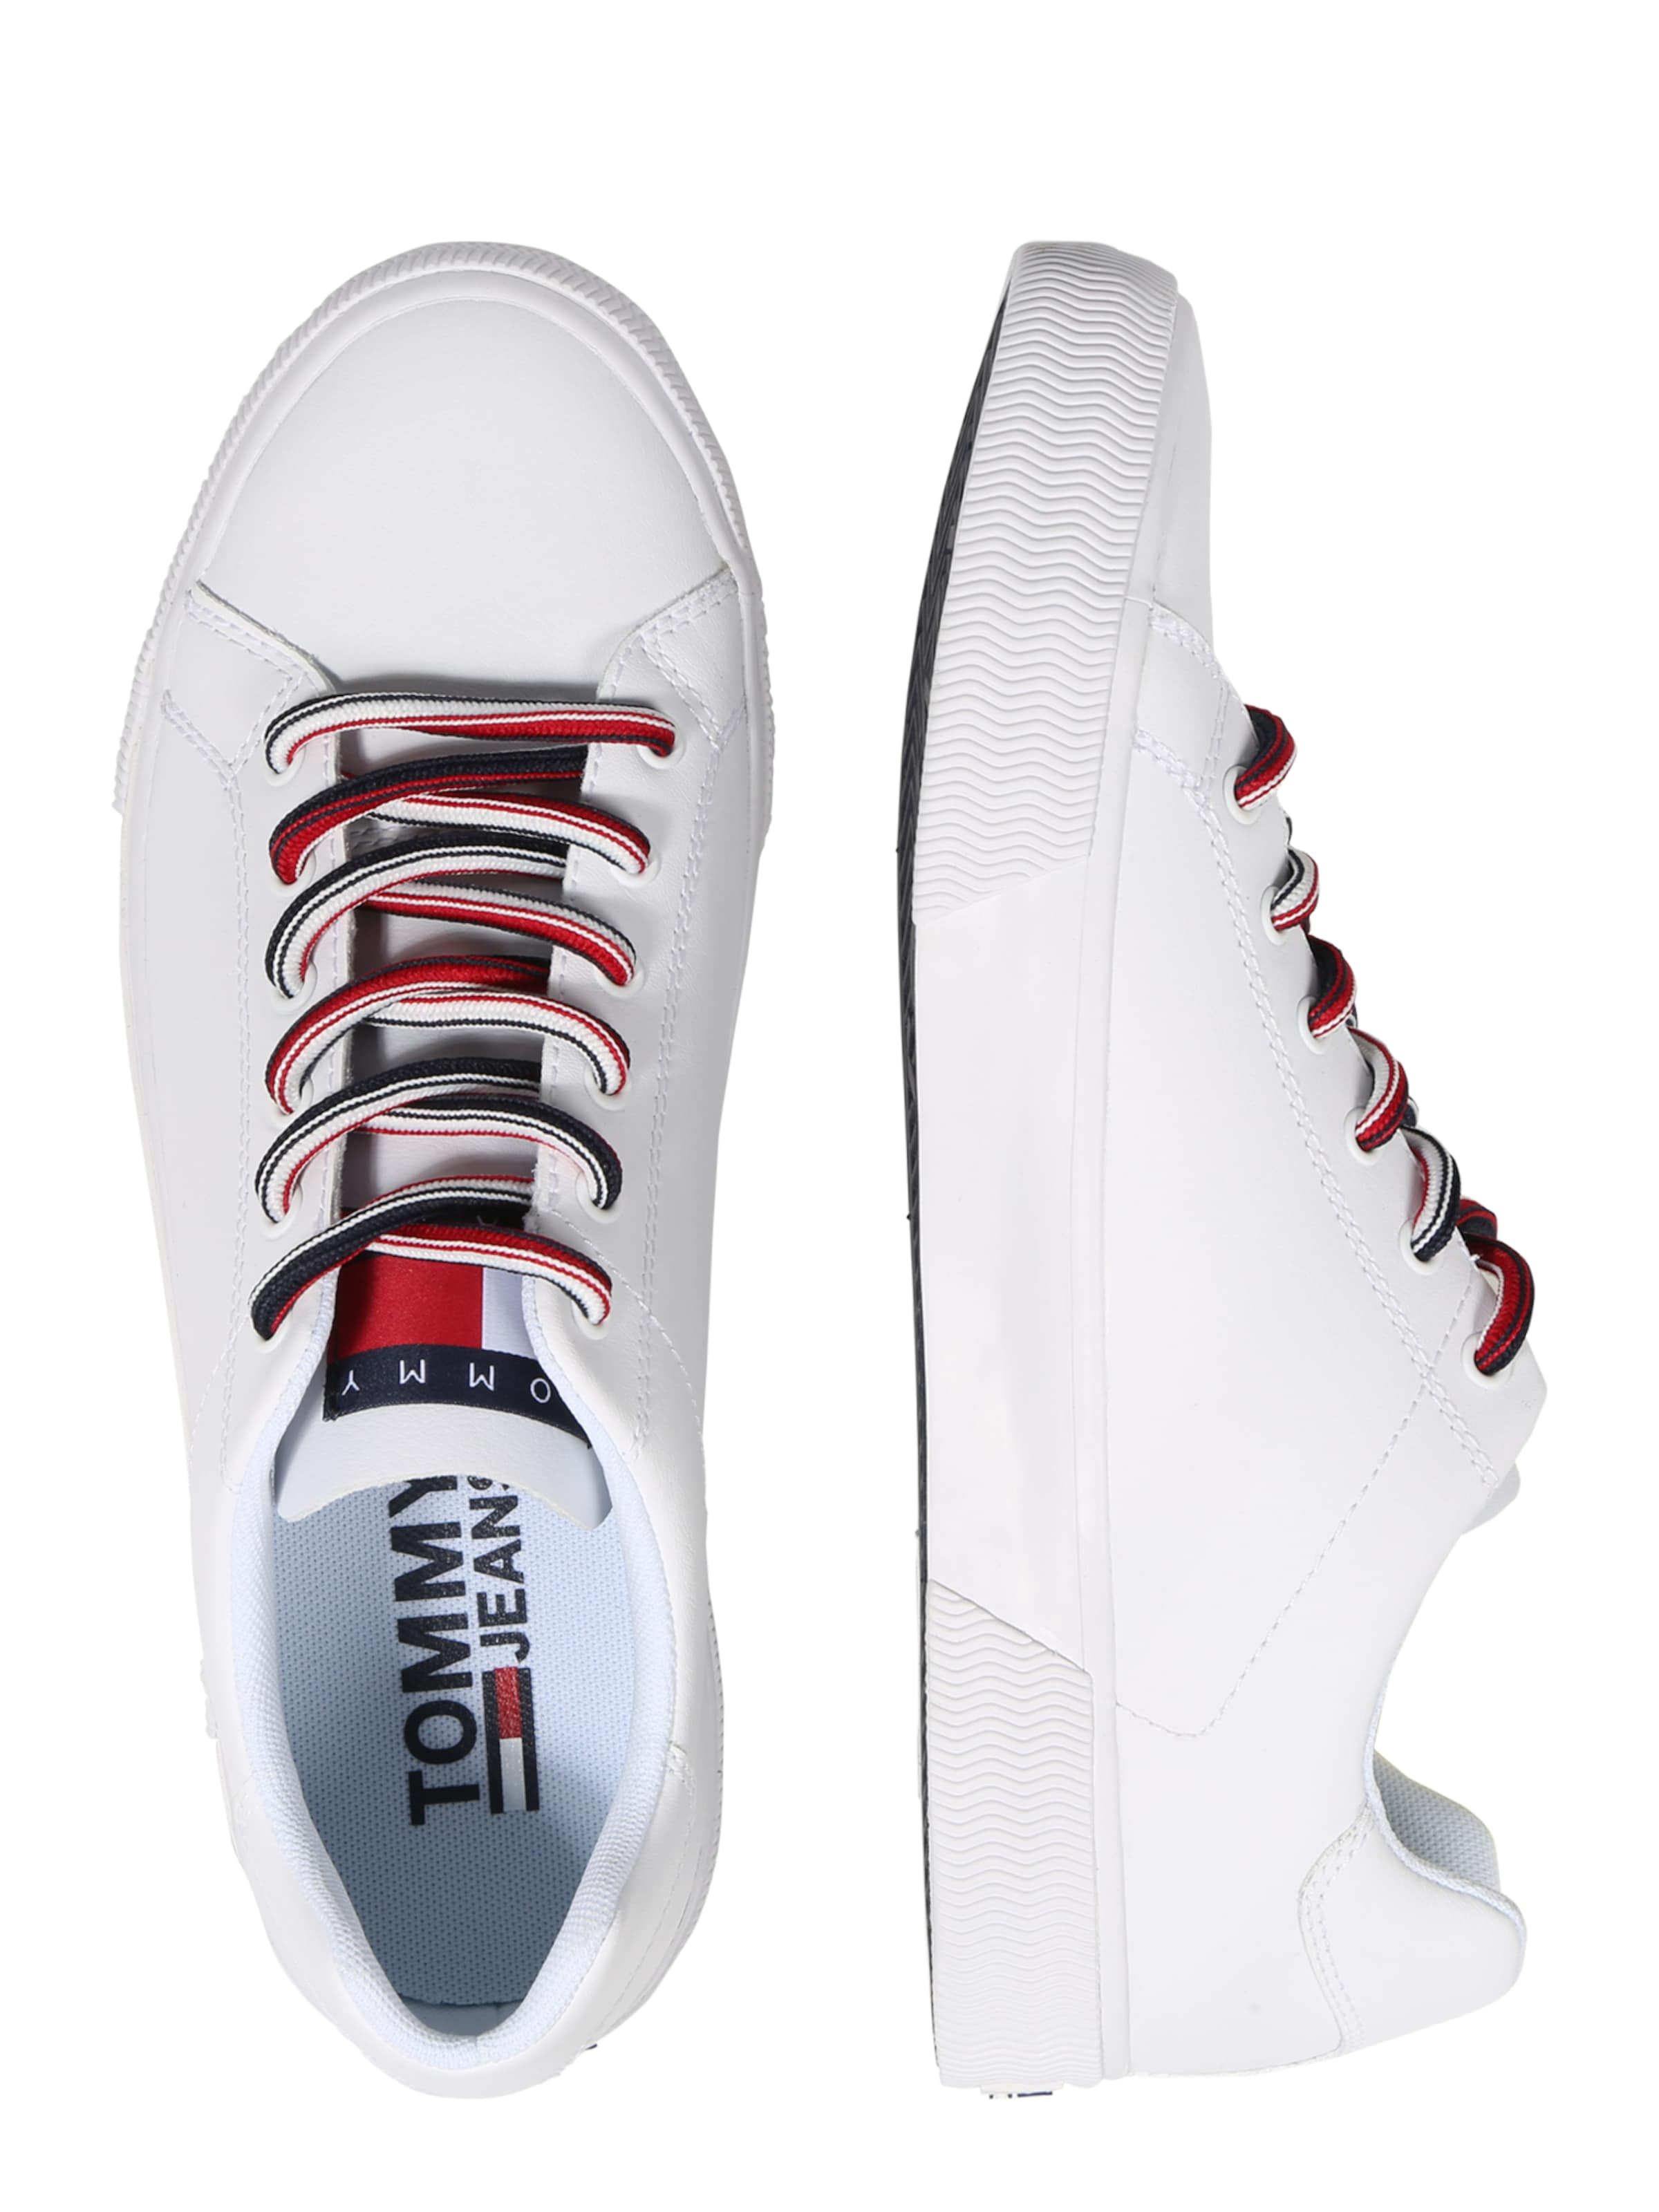 In Weiß Sneaker 'essential Sneaker' Tommy Jeans UMGqVpLzS